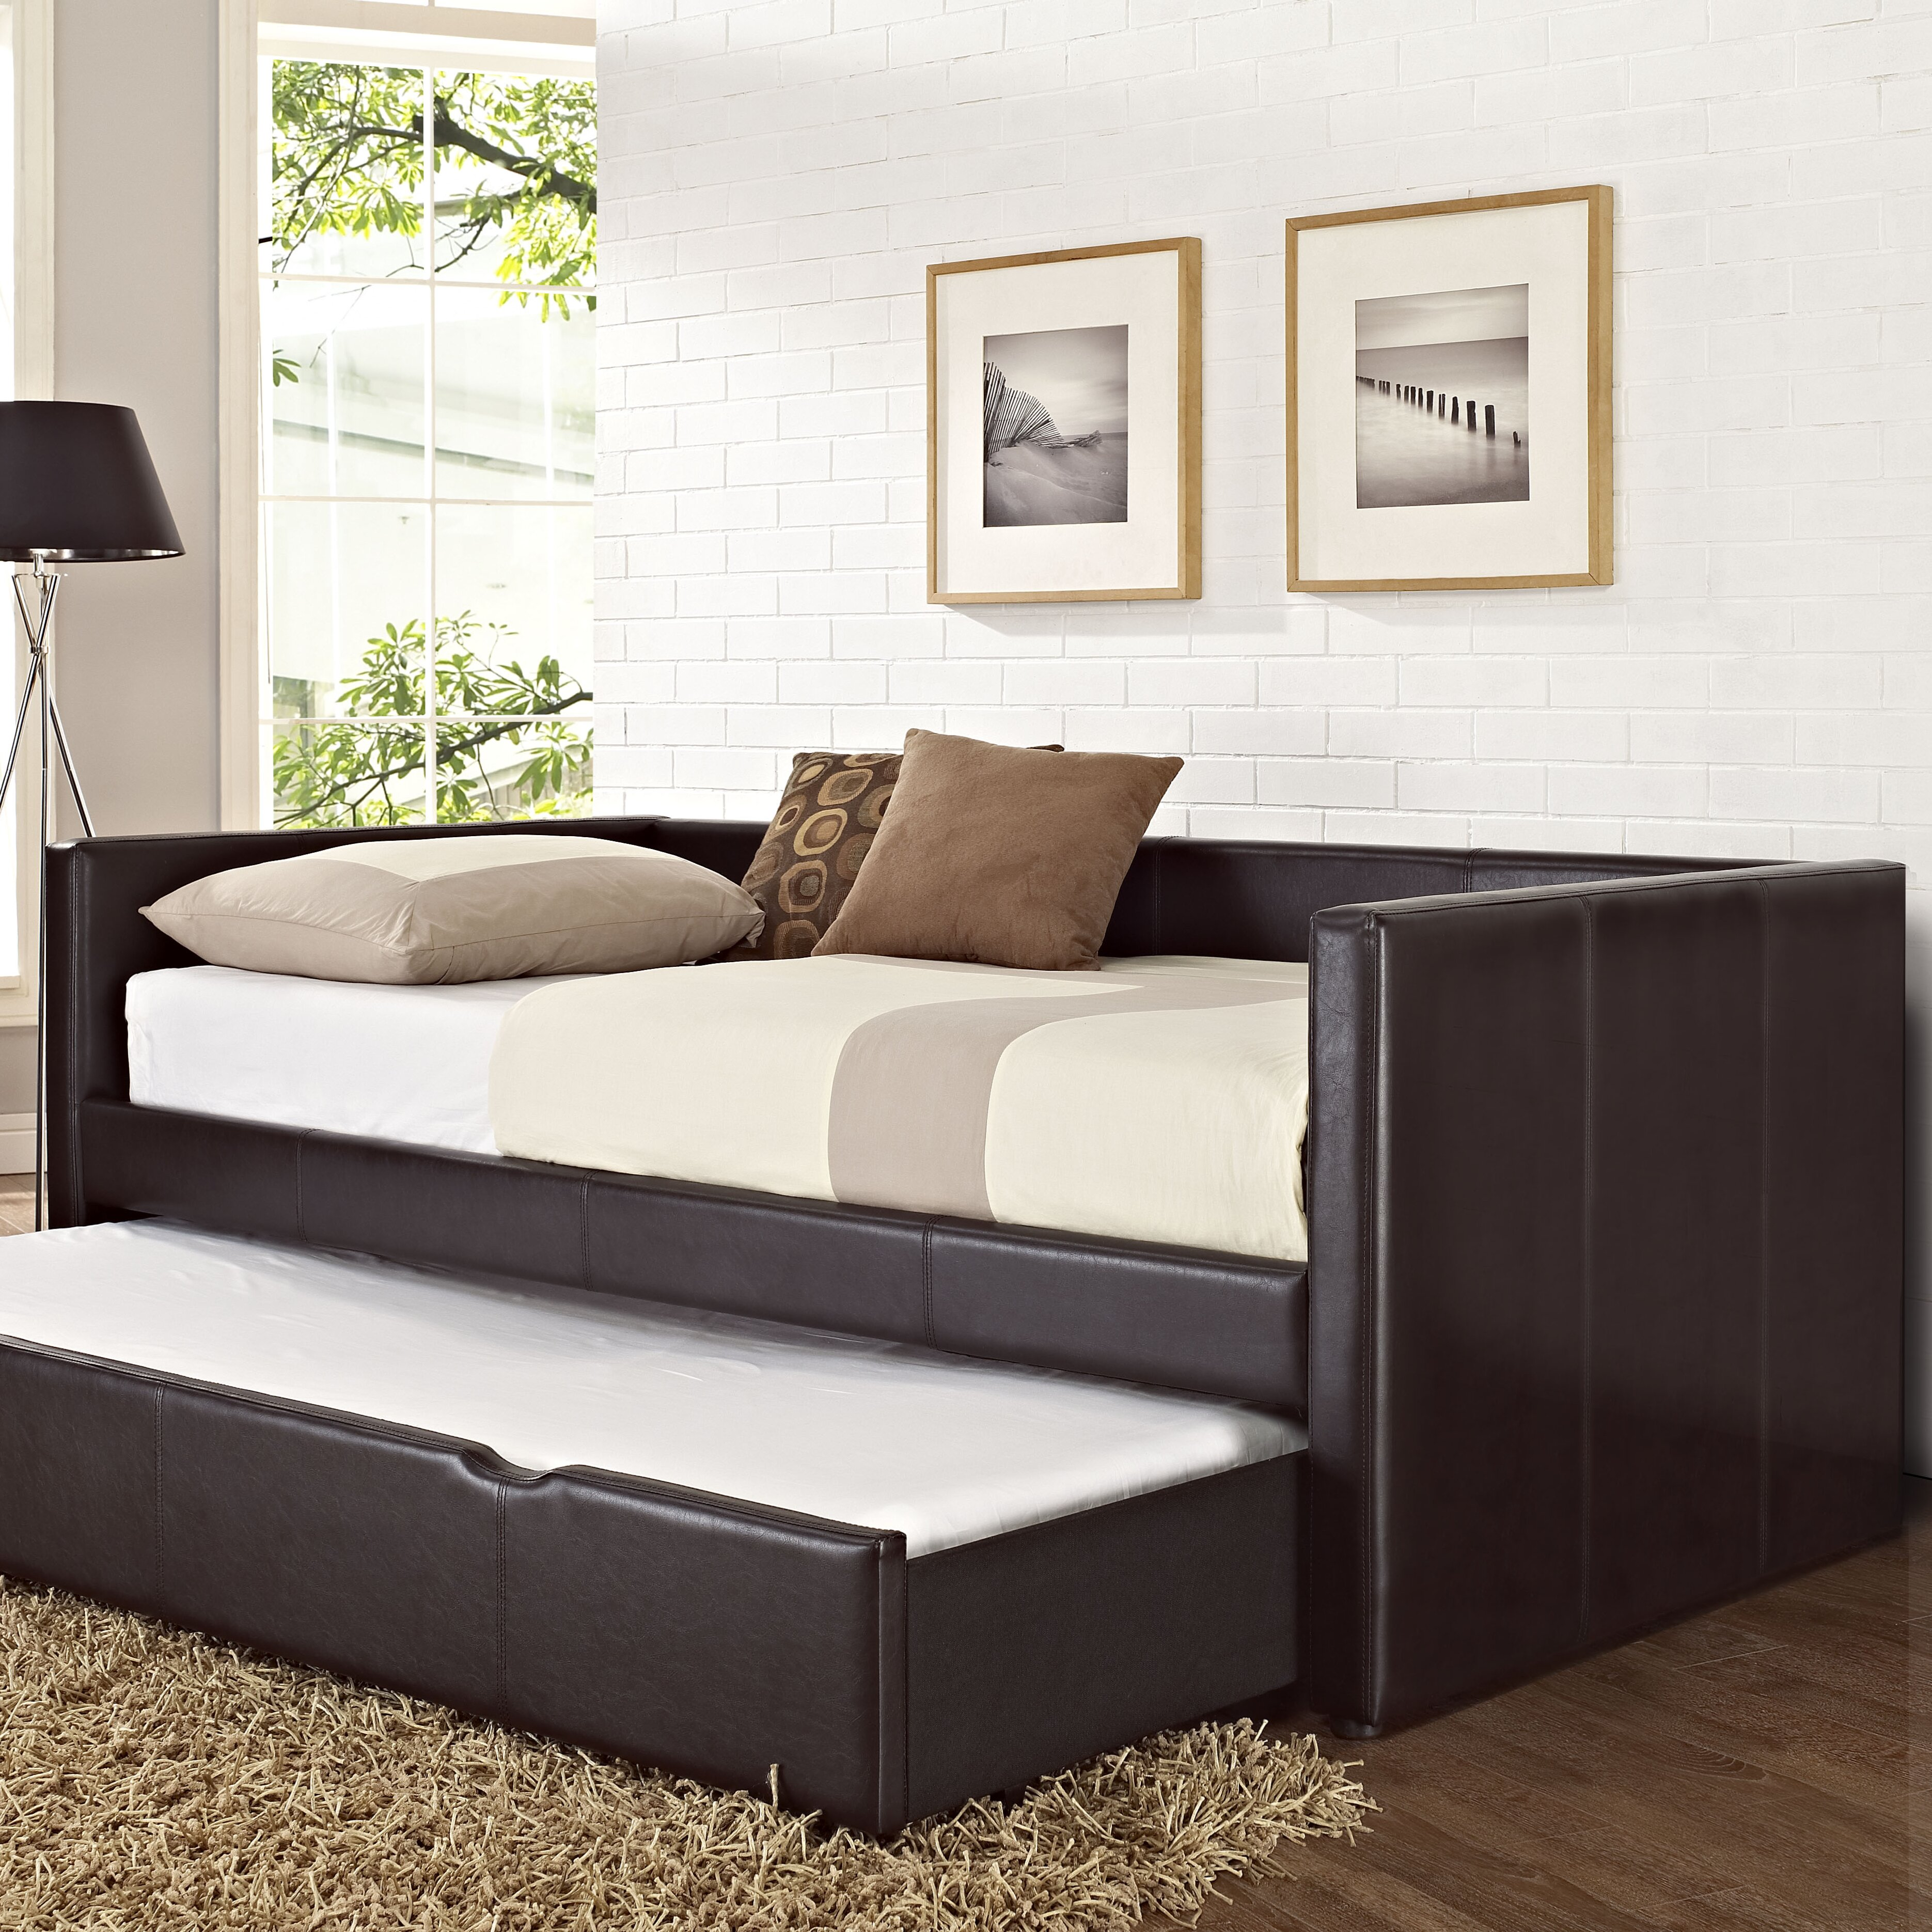 Standard Furniture Lindsey Daybed With Trundle Reviews Wayfair